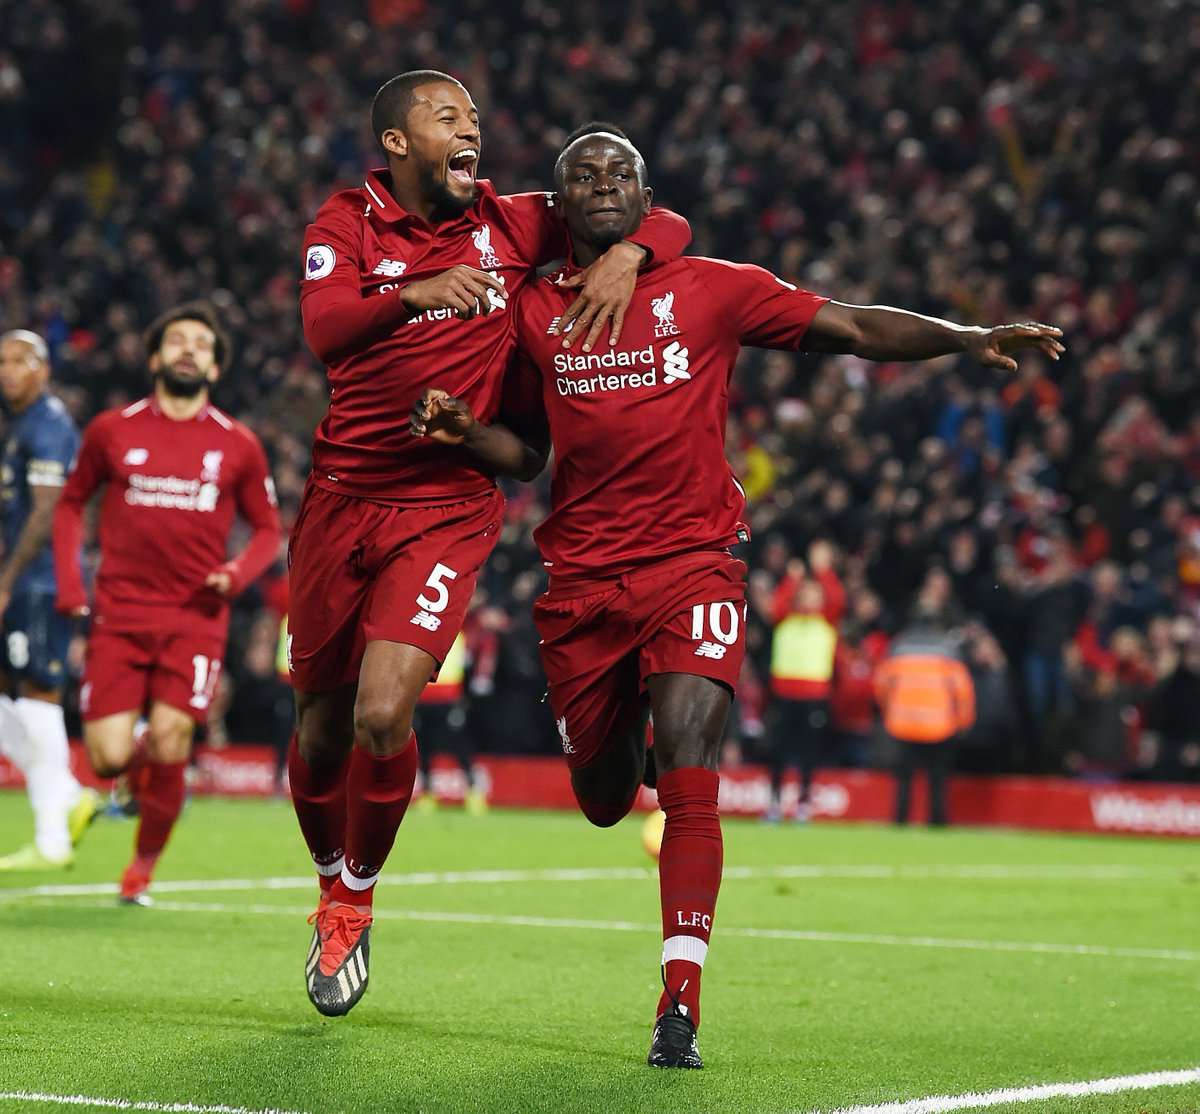 Liverpool's display against Manchester United one of the best, claims Klopp